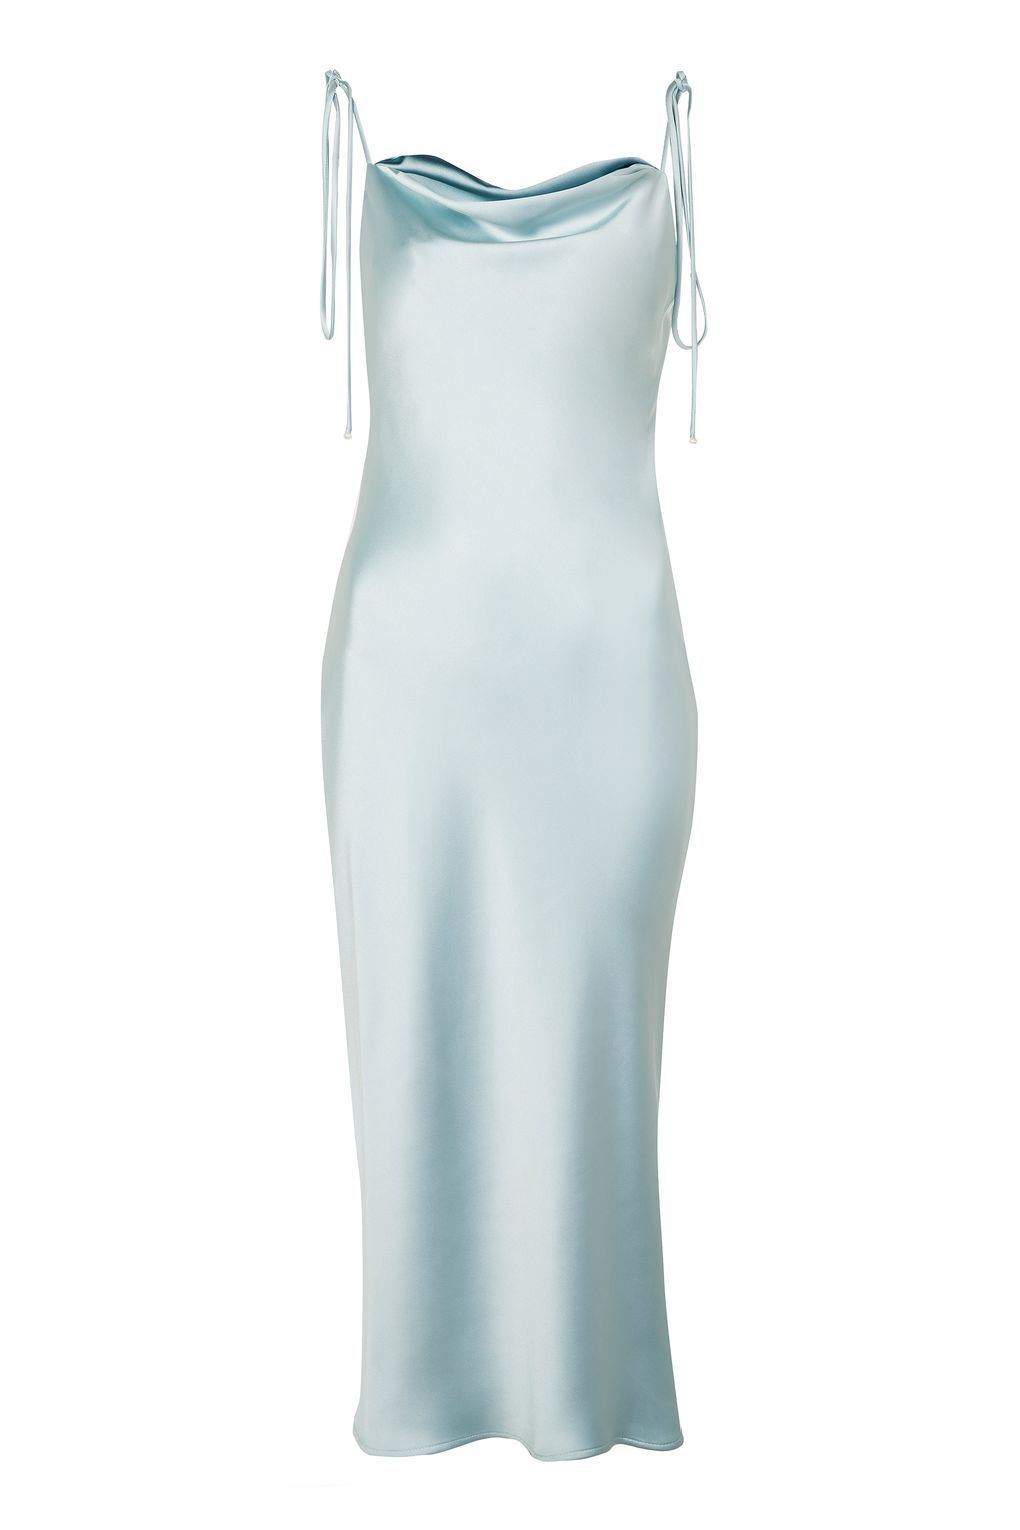 Cowl Tie Satin Slip Dress - New In Fashion - New In - Topshop Europe ...